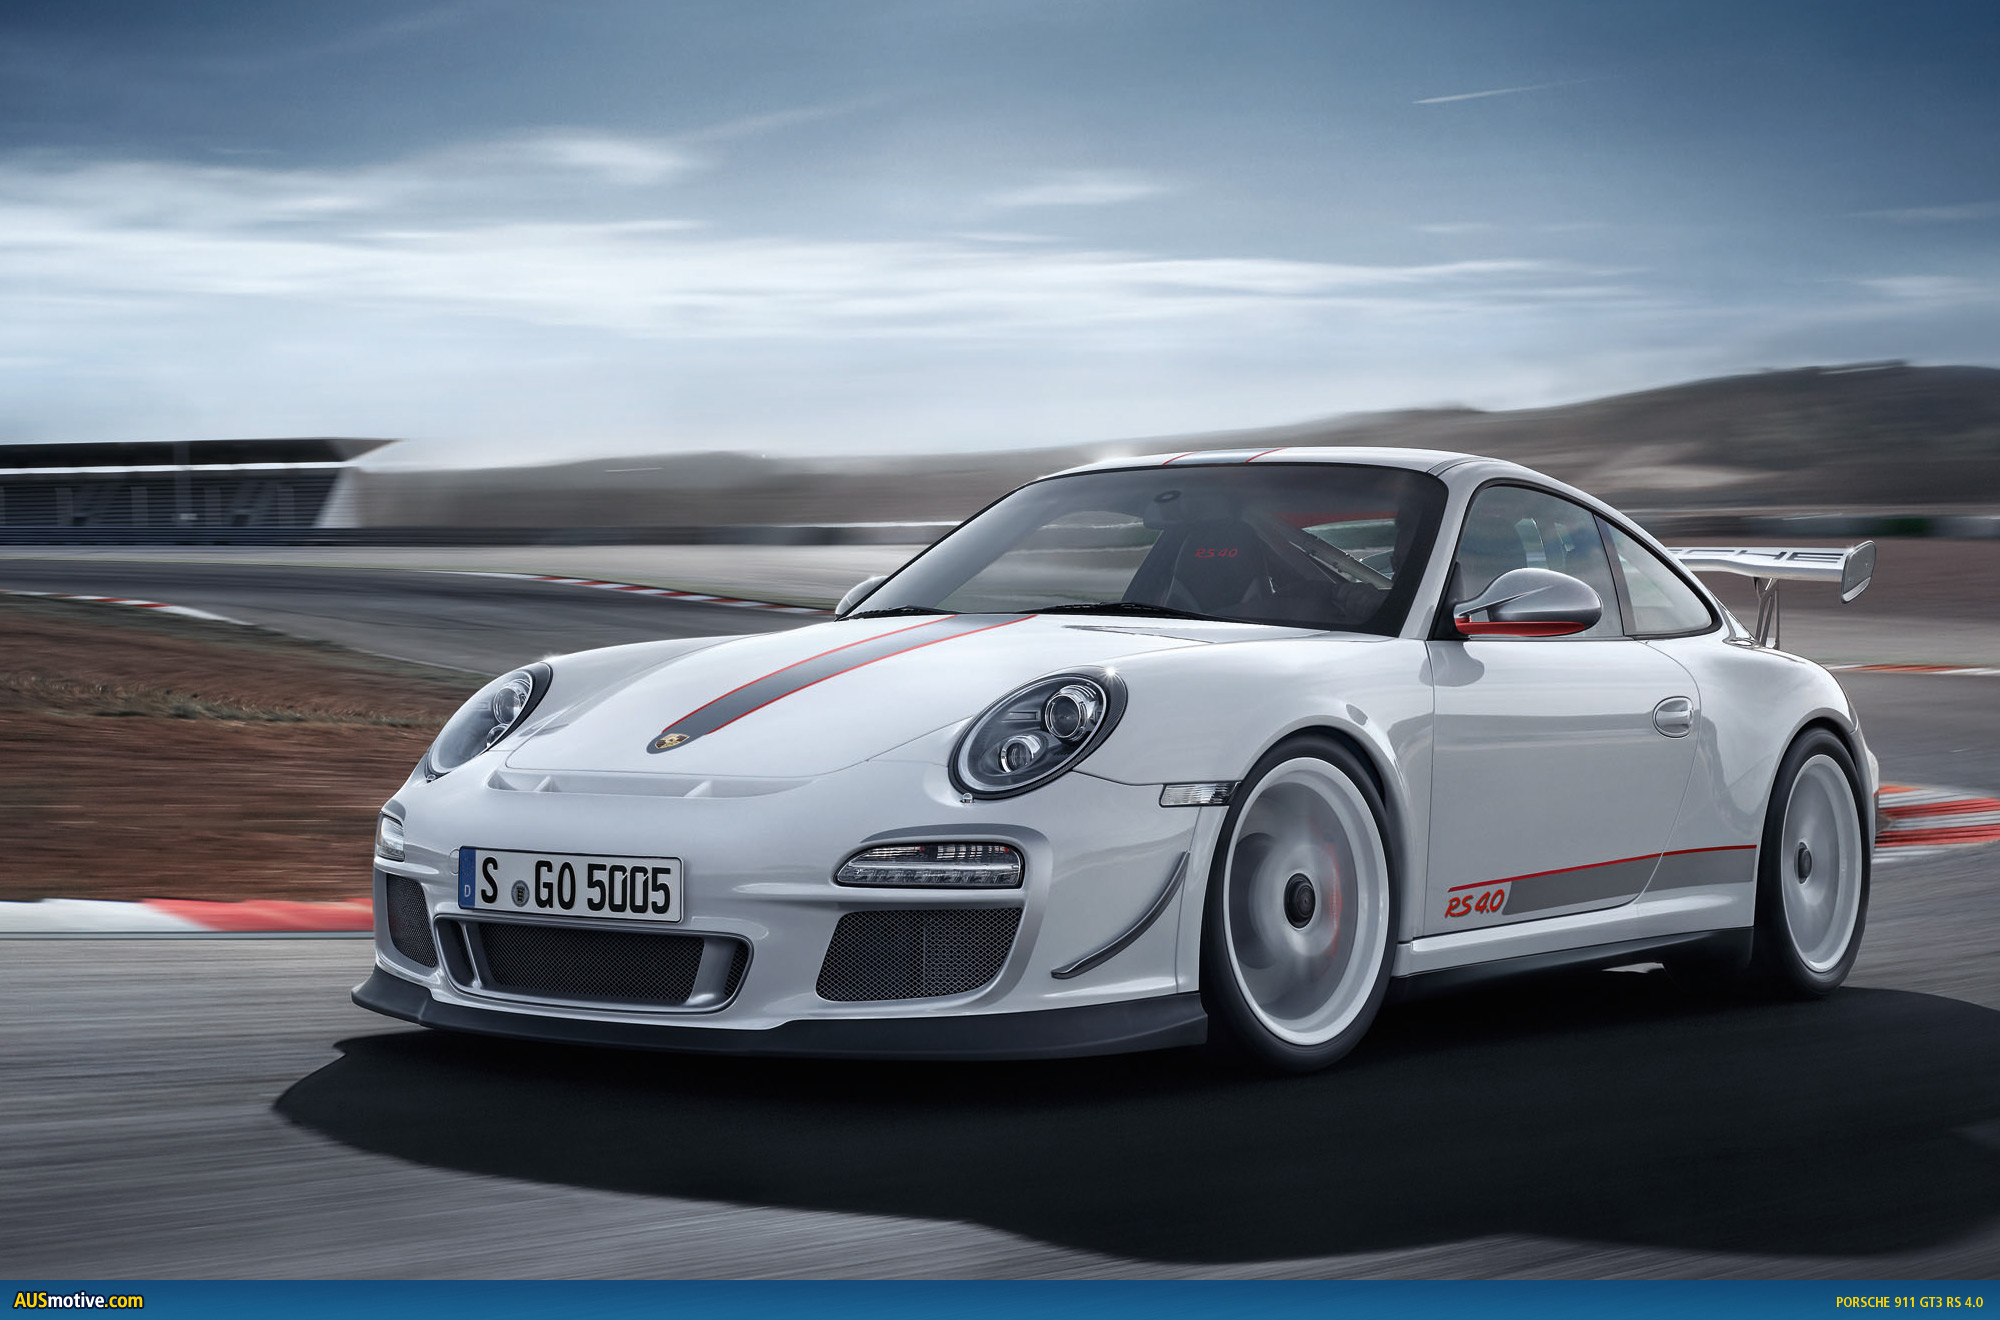 AUSmotive.com » OFFICIAL: Porsche 911 GT3 RS 4.0